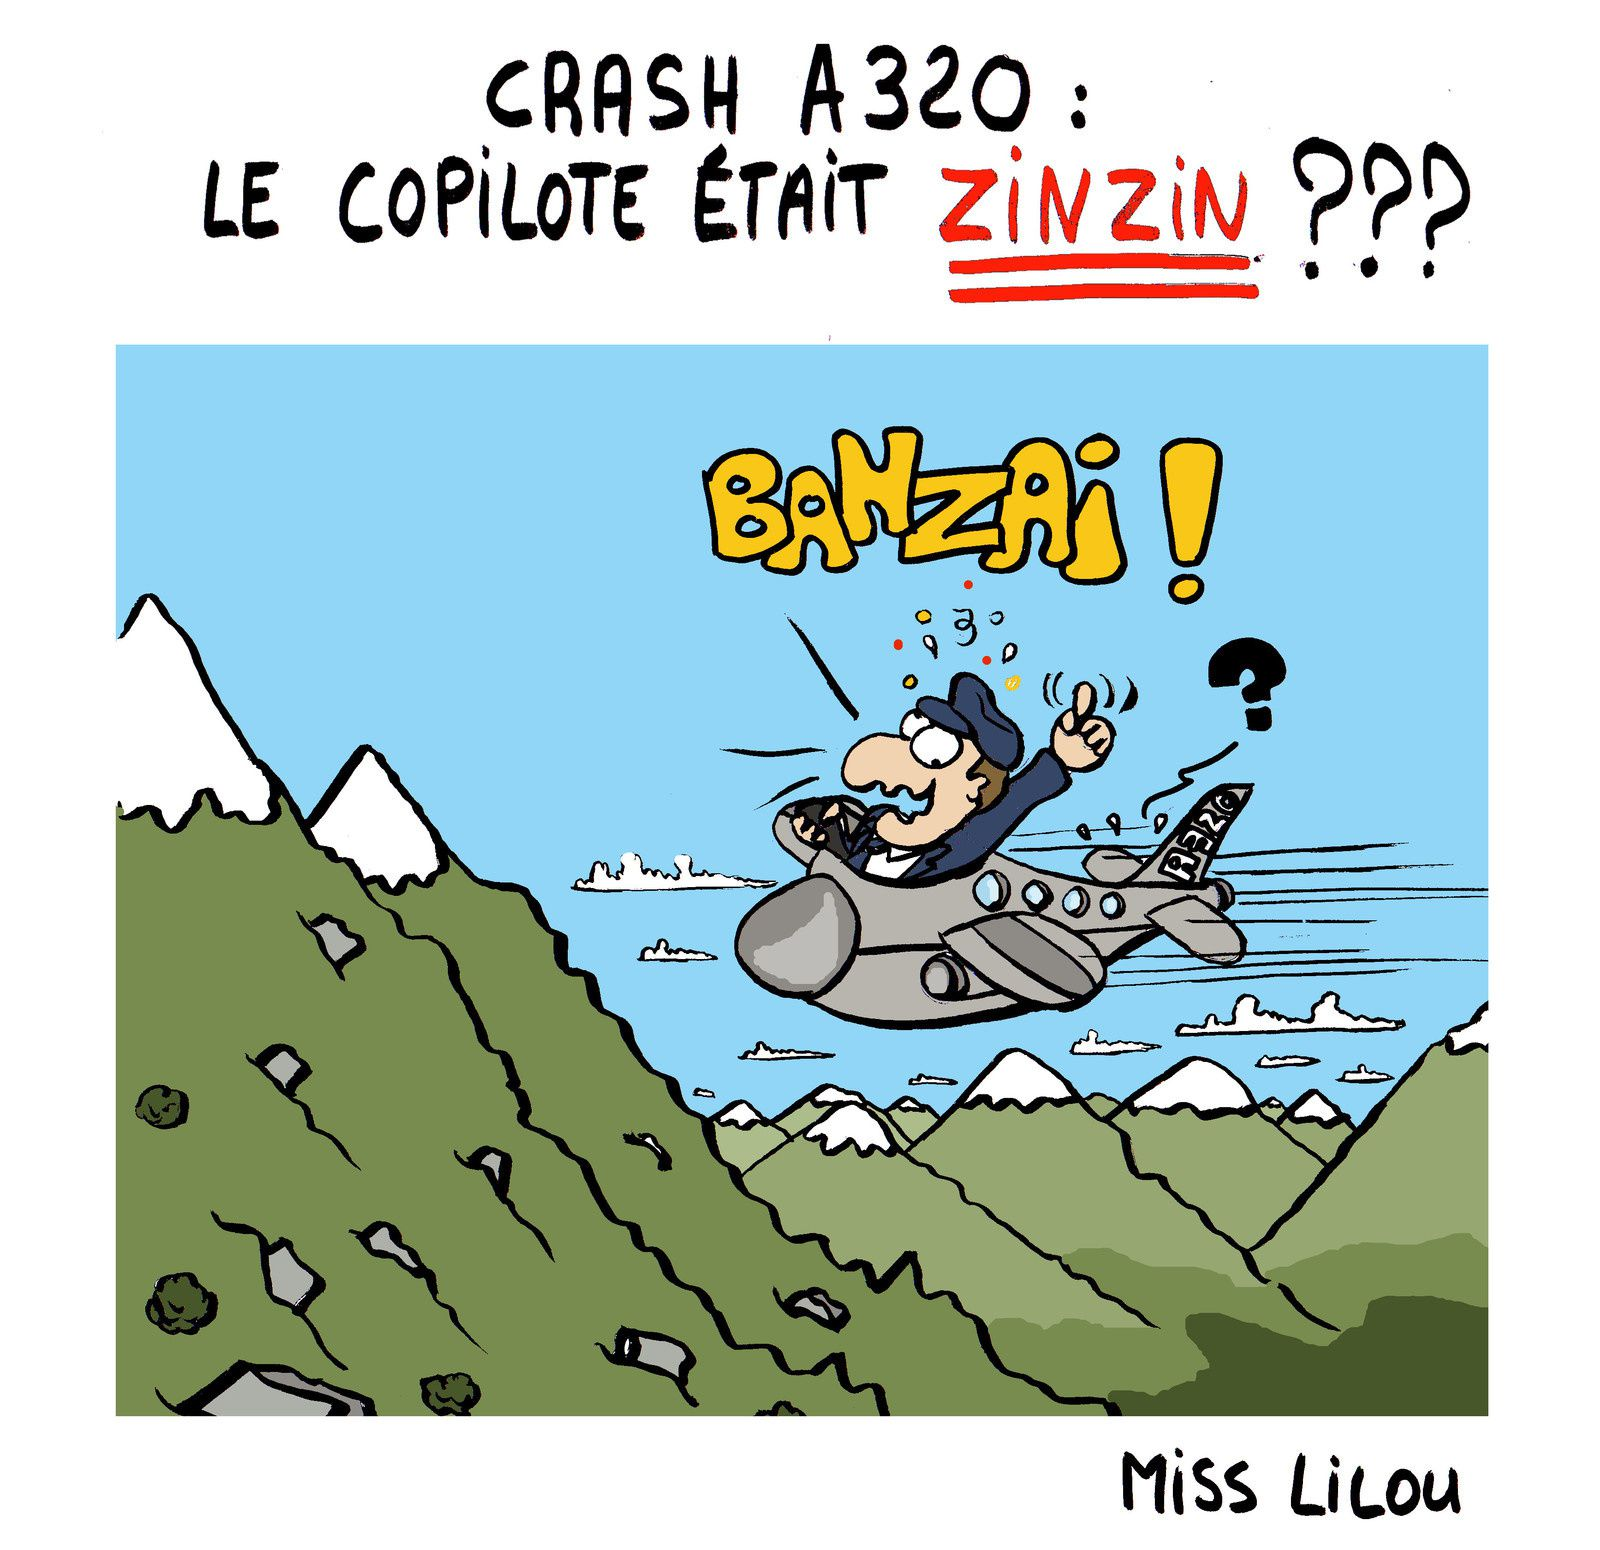 CRASH A320 : LE COPILOTE ÉTAIT ZINZIN ???